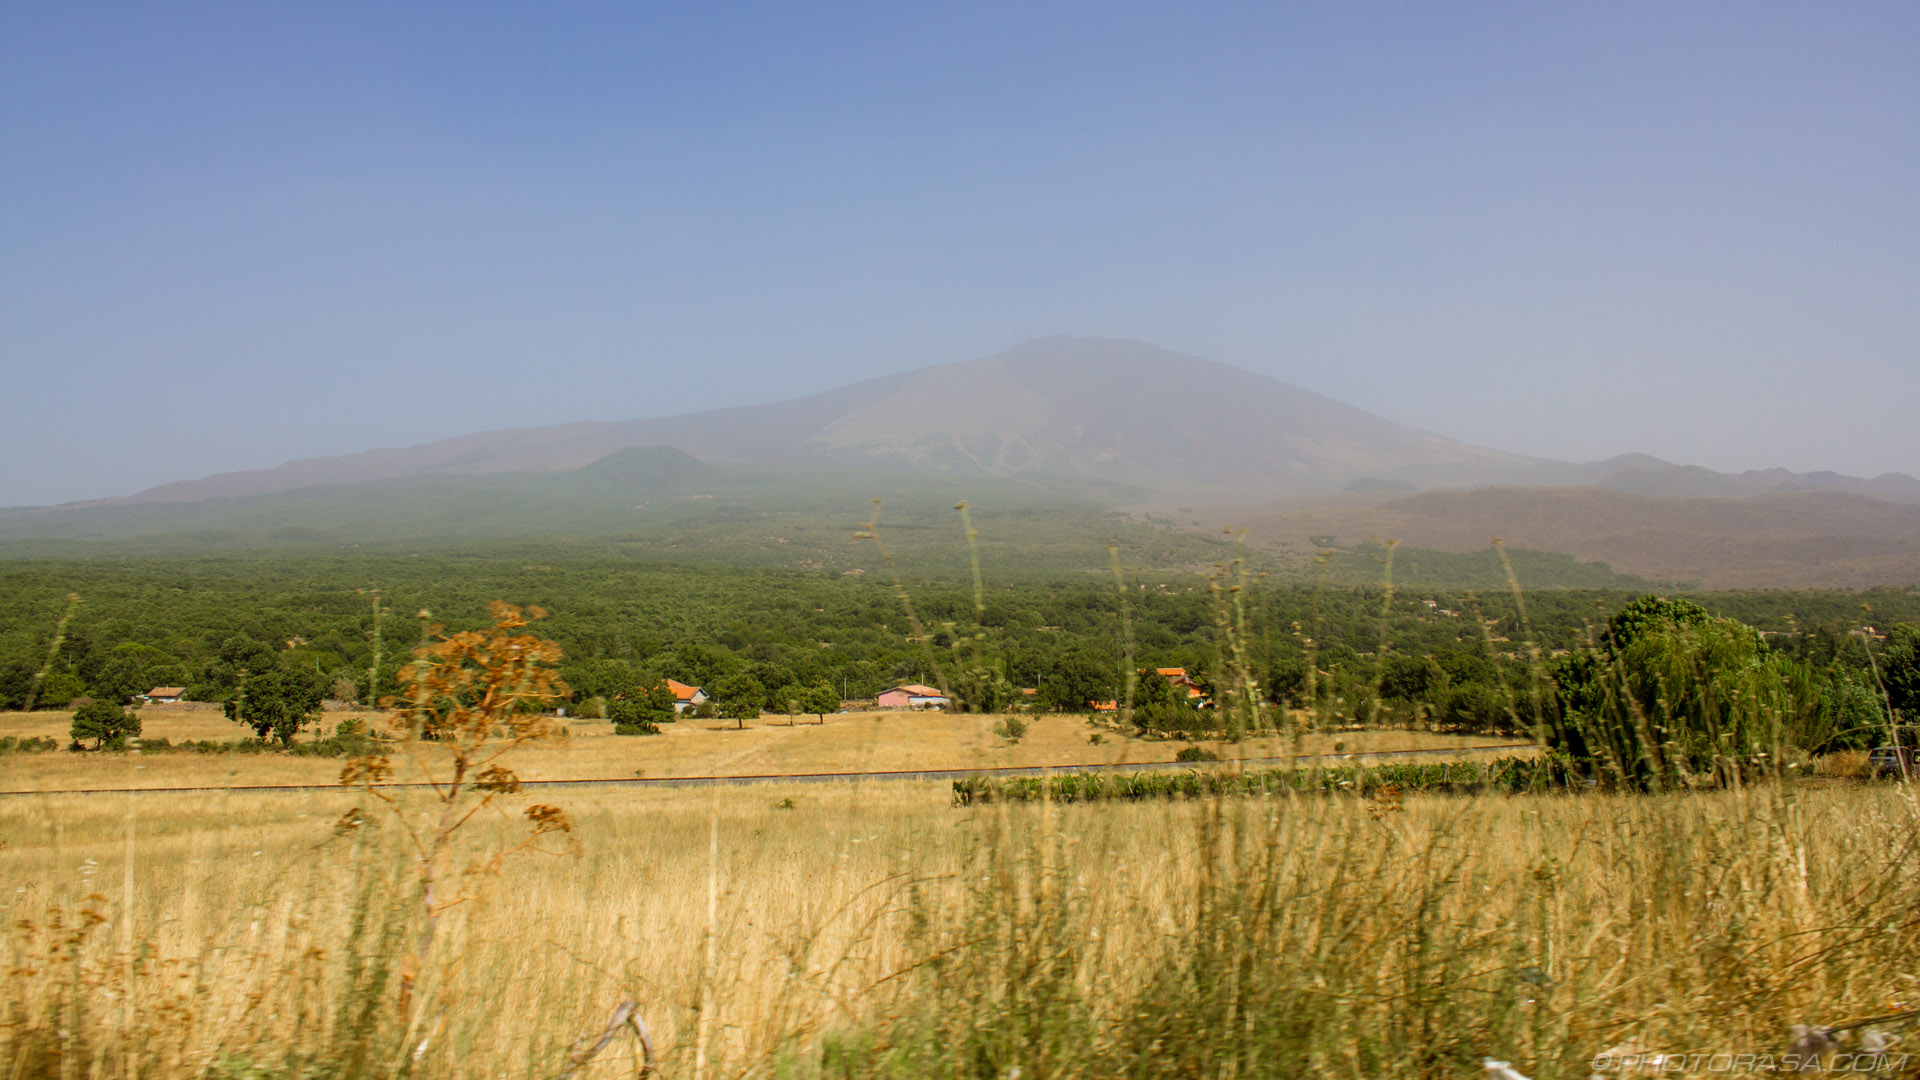 https://photorasa.com/mount-etna/etna-in-the-distance/